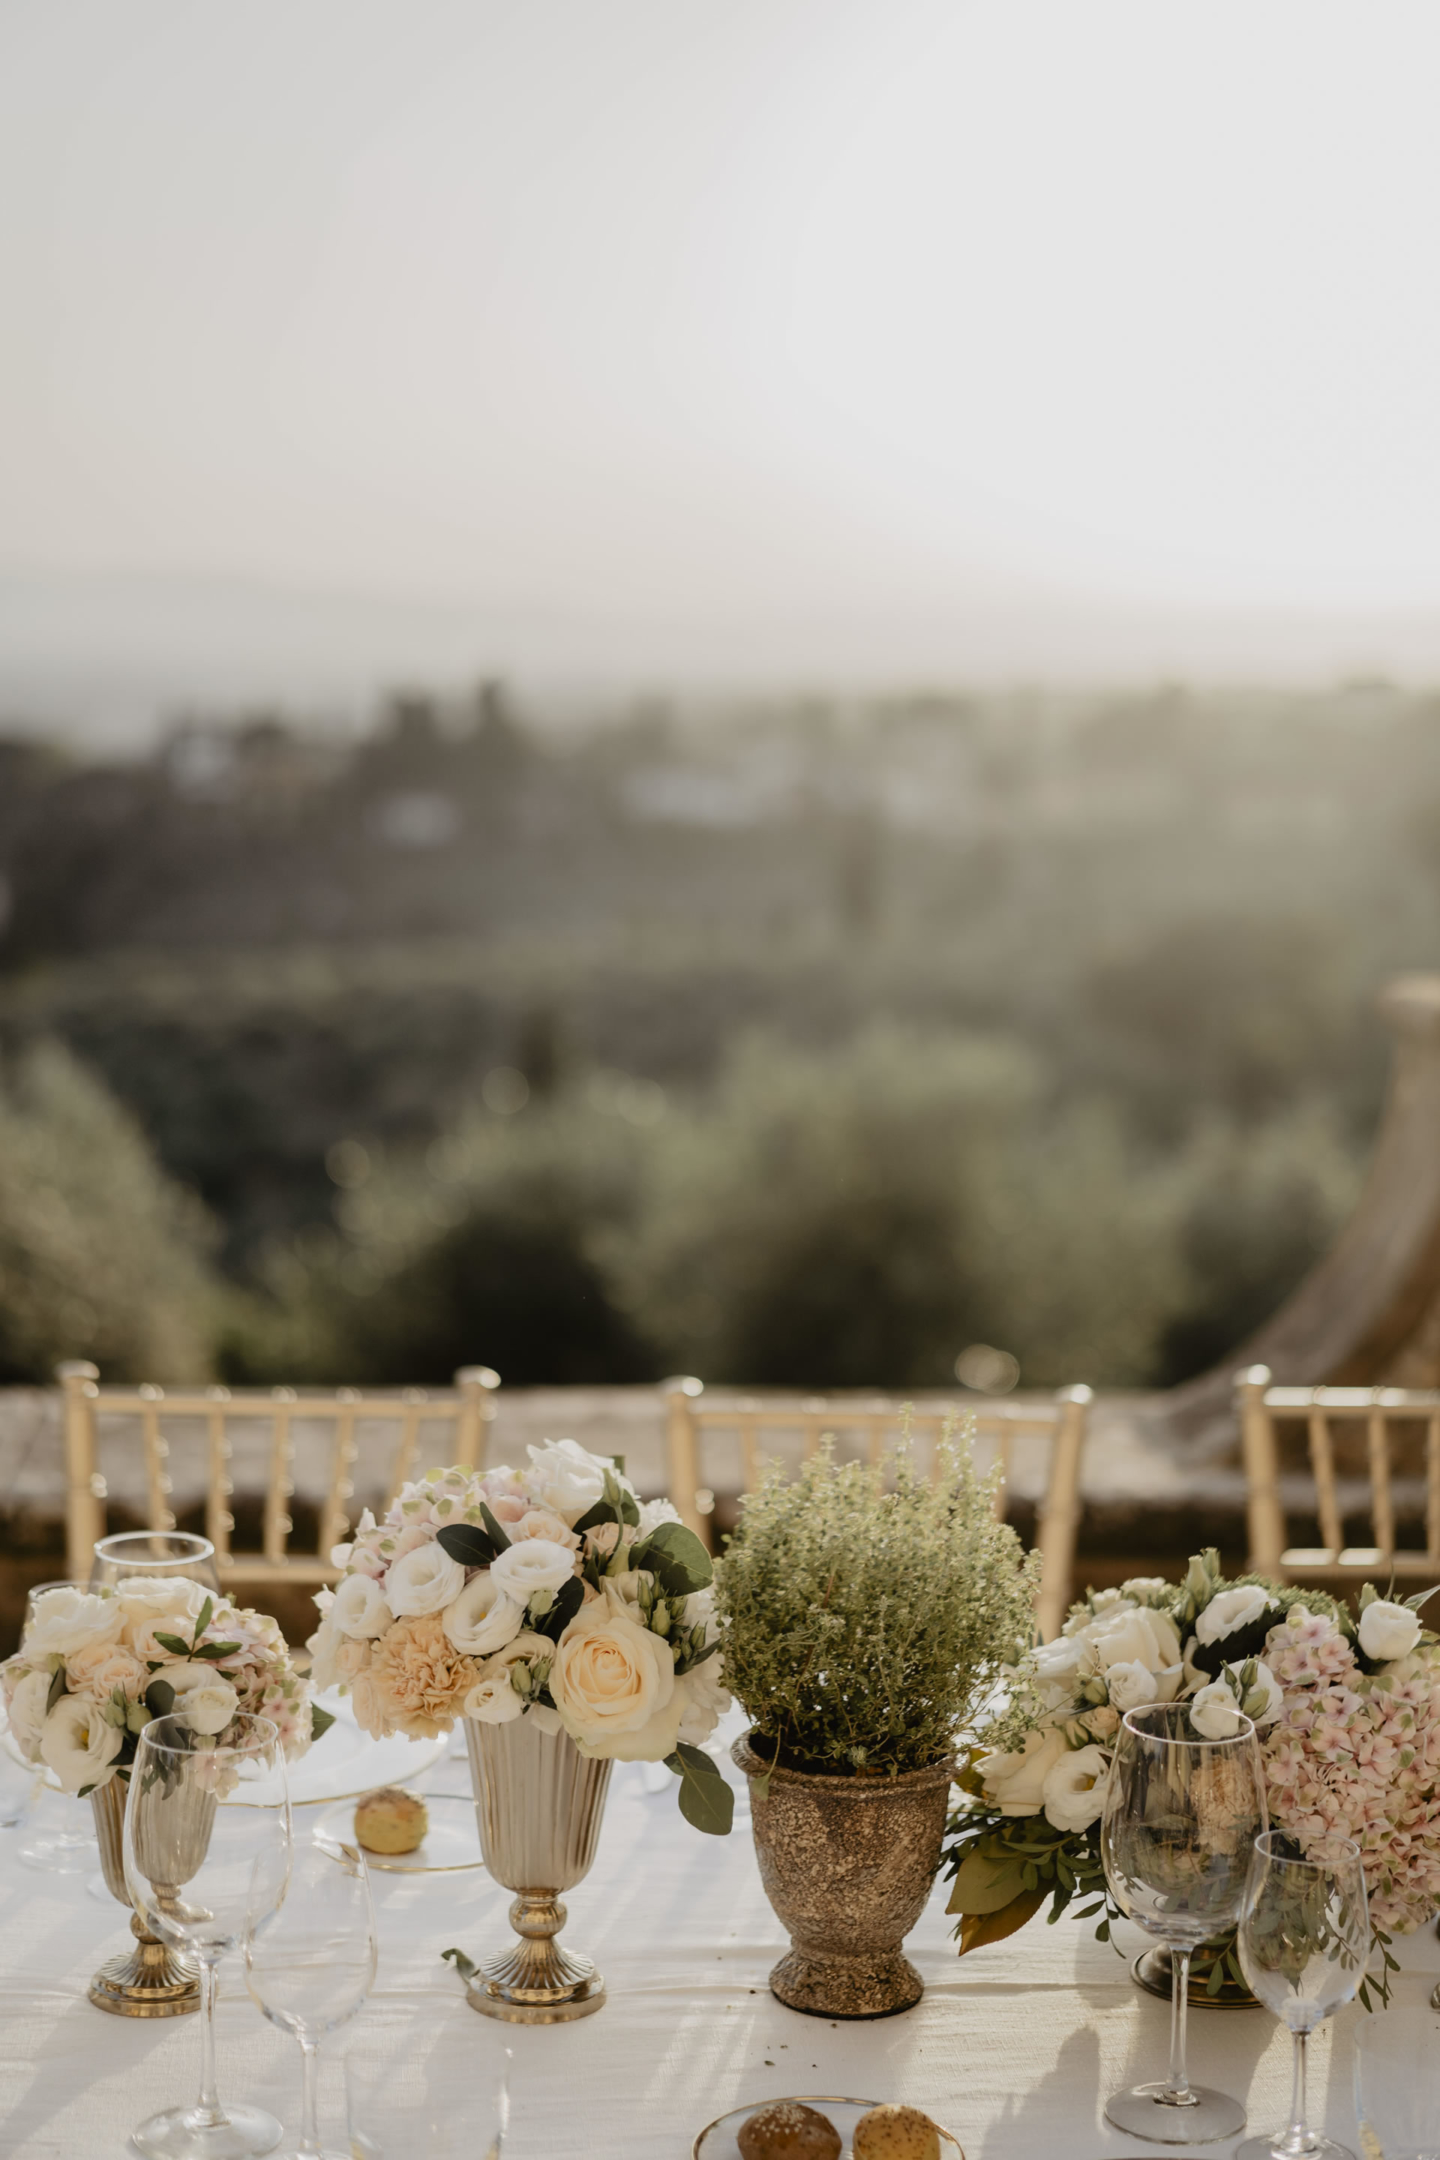 - 68 :: From Los angeles to Florence: a glamour asiatic wedding :: Luxury wedding photography - 67 ::  - 68